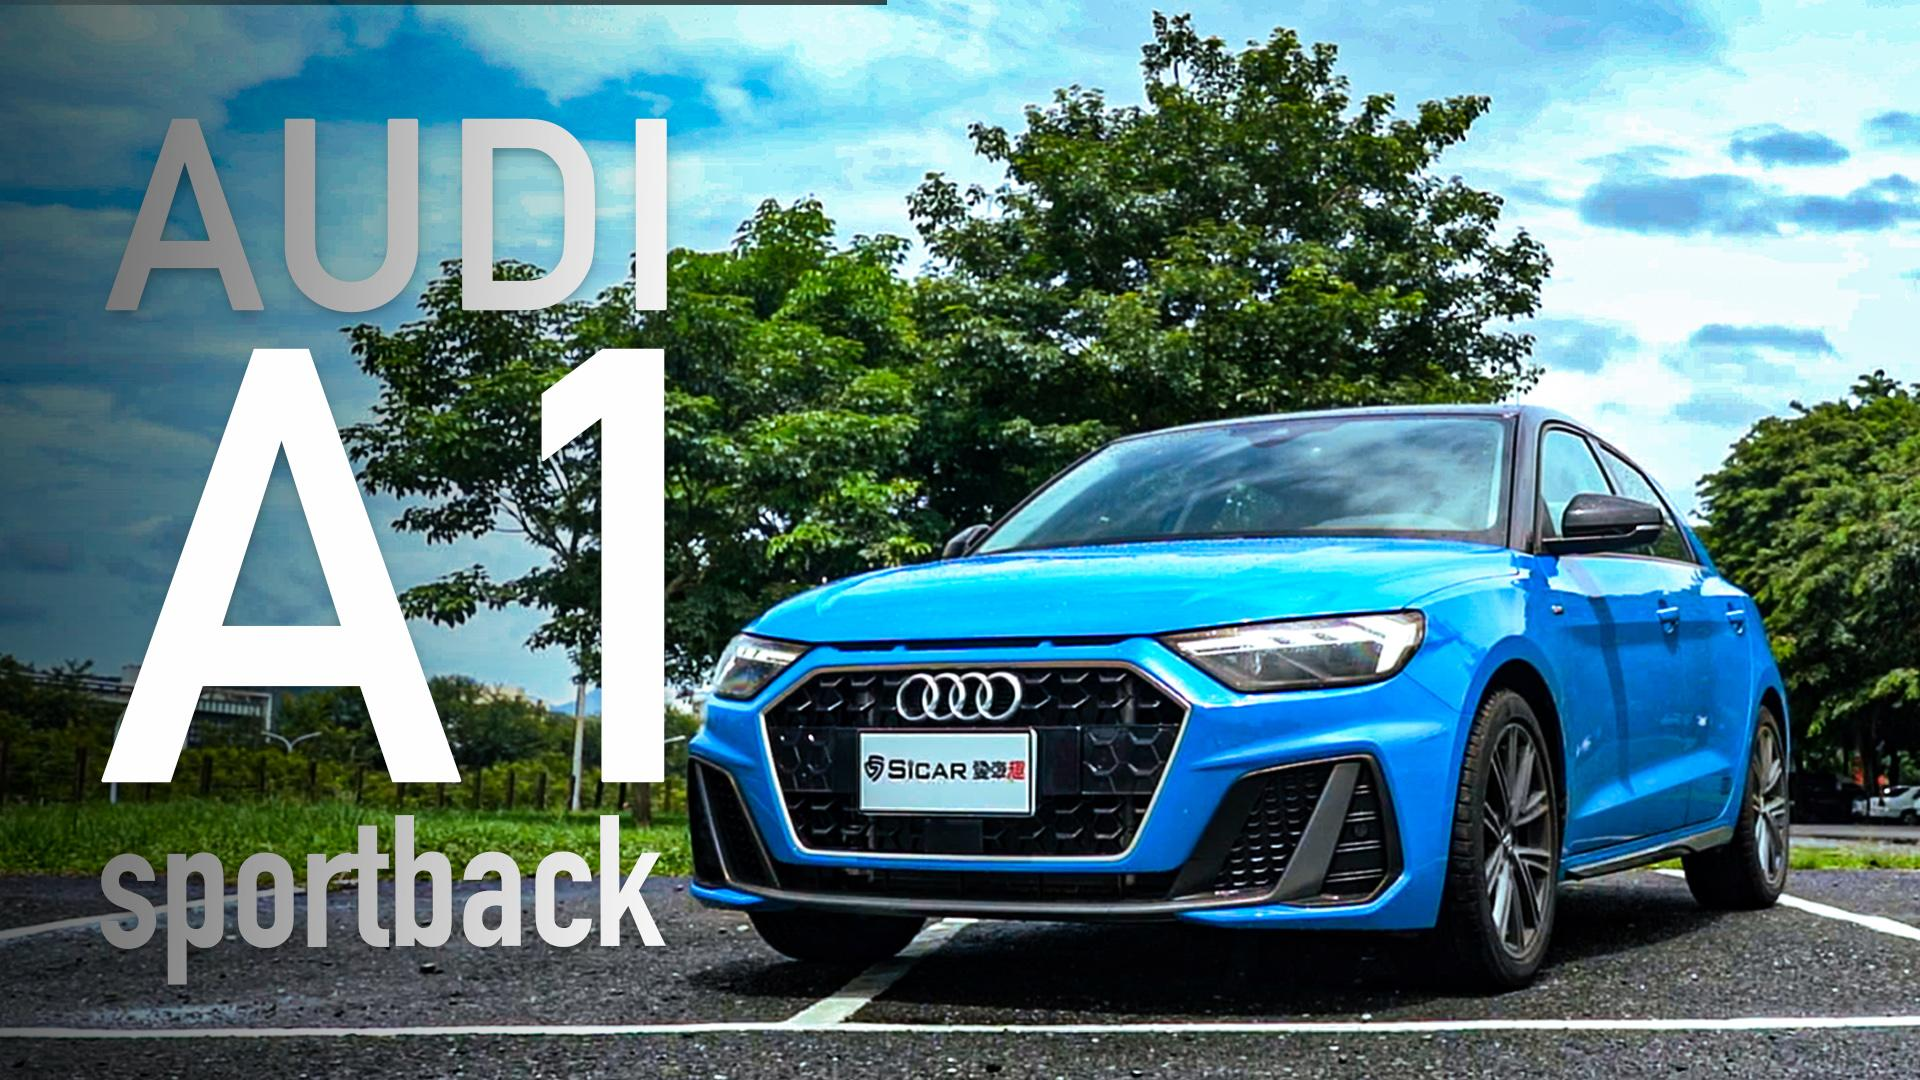 【Andy老爹試駕】AUDI A1 Sportback 30 TFSI S-LINE 都會小鋼砲